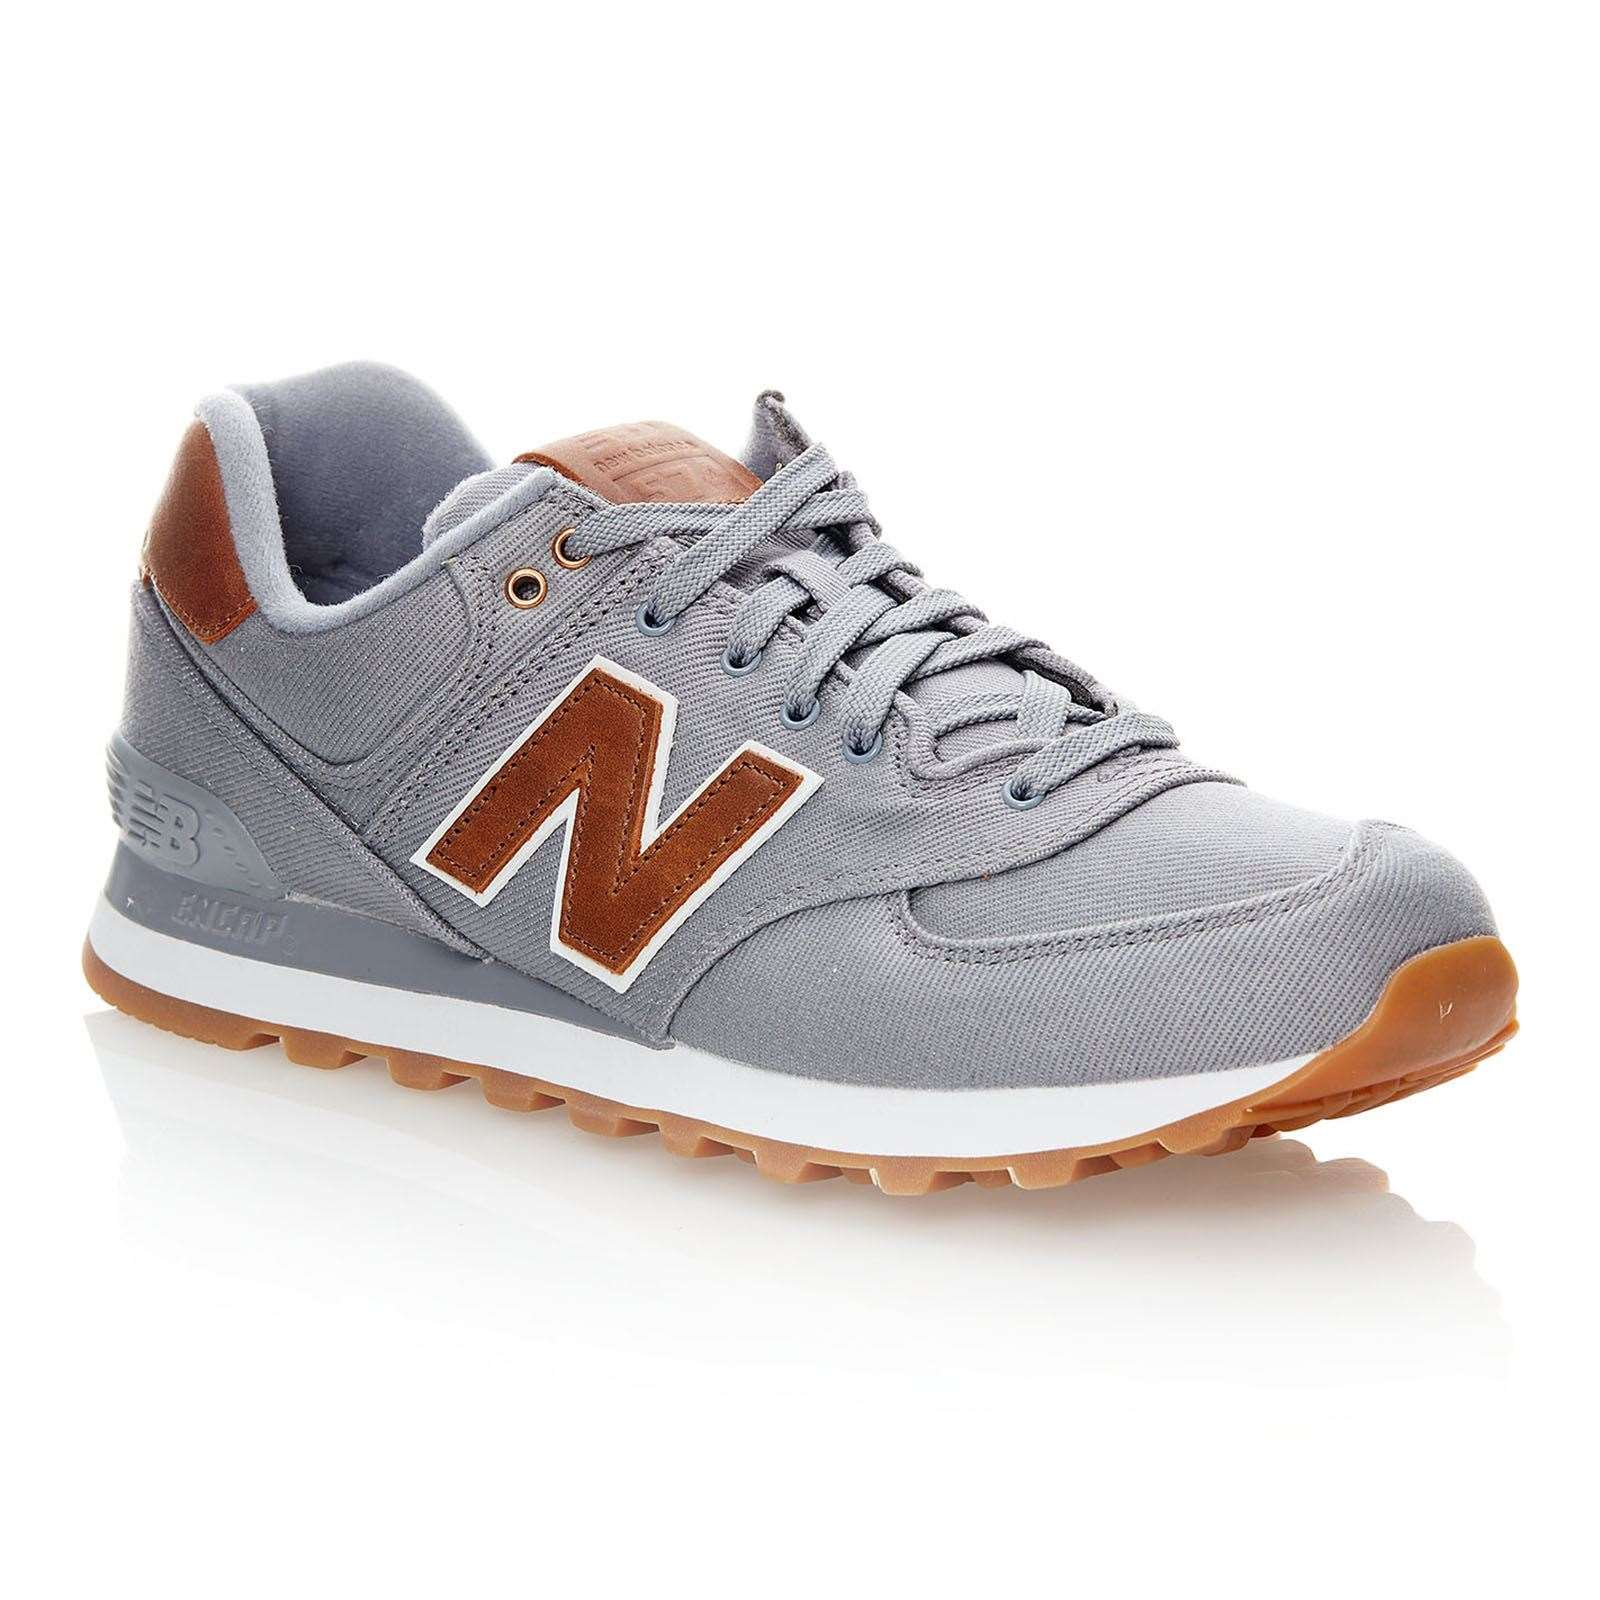 NEW BALANCE ML574 D Baskets en cuir mélangé gris